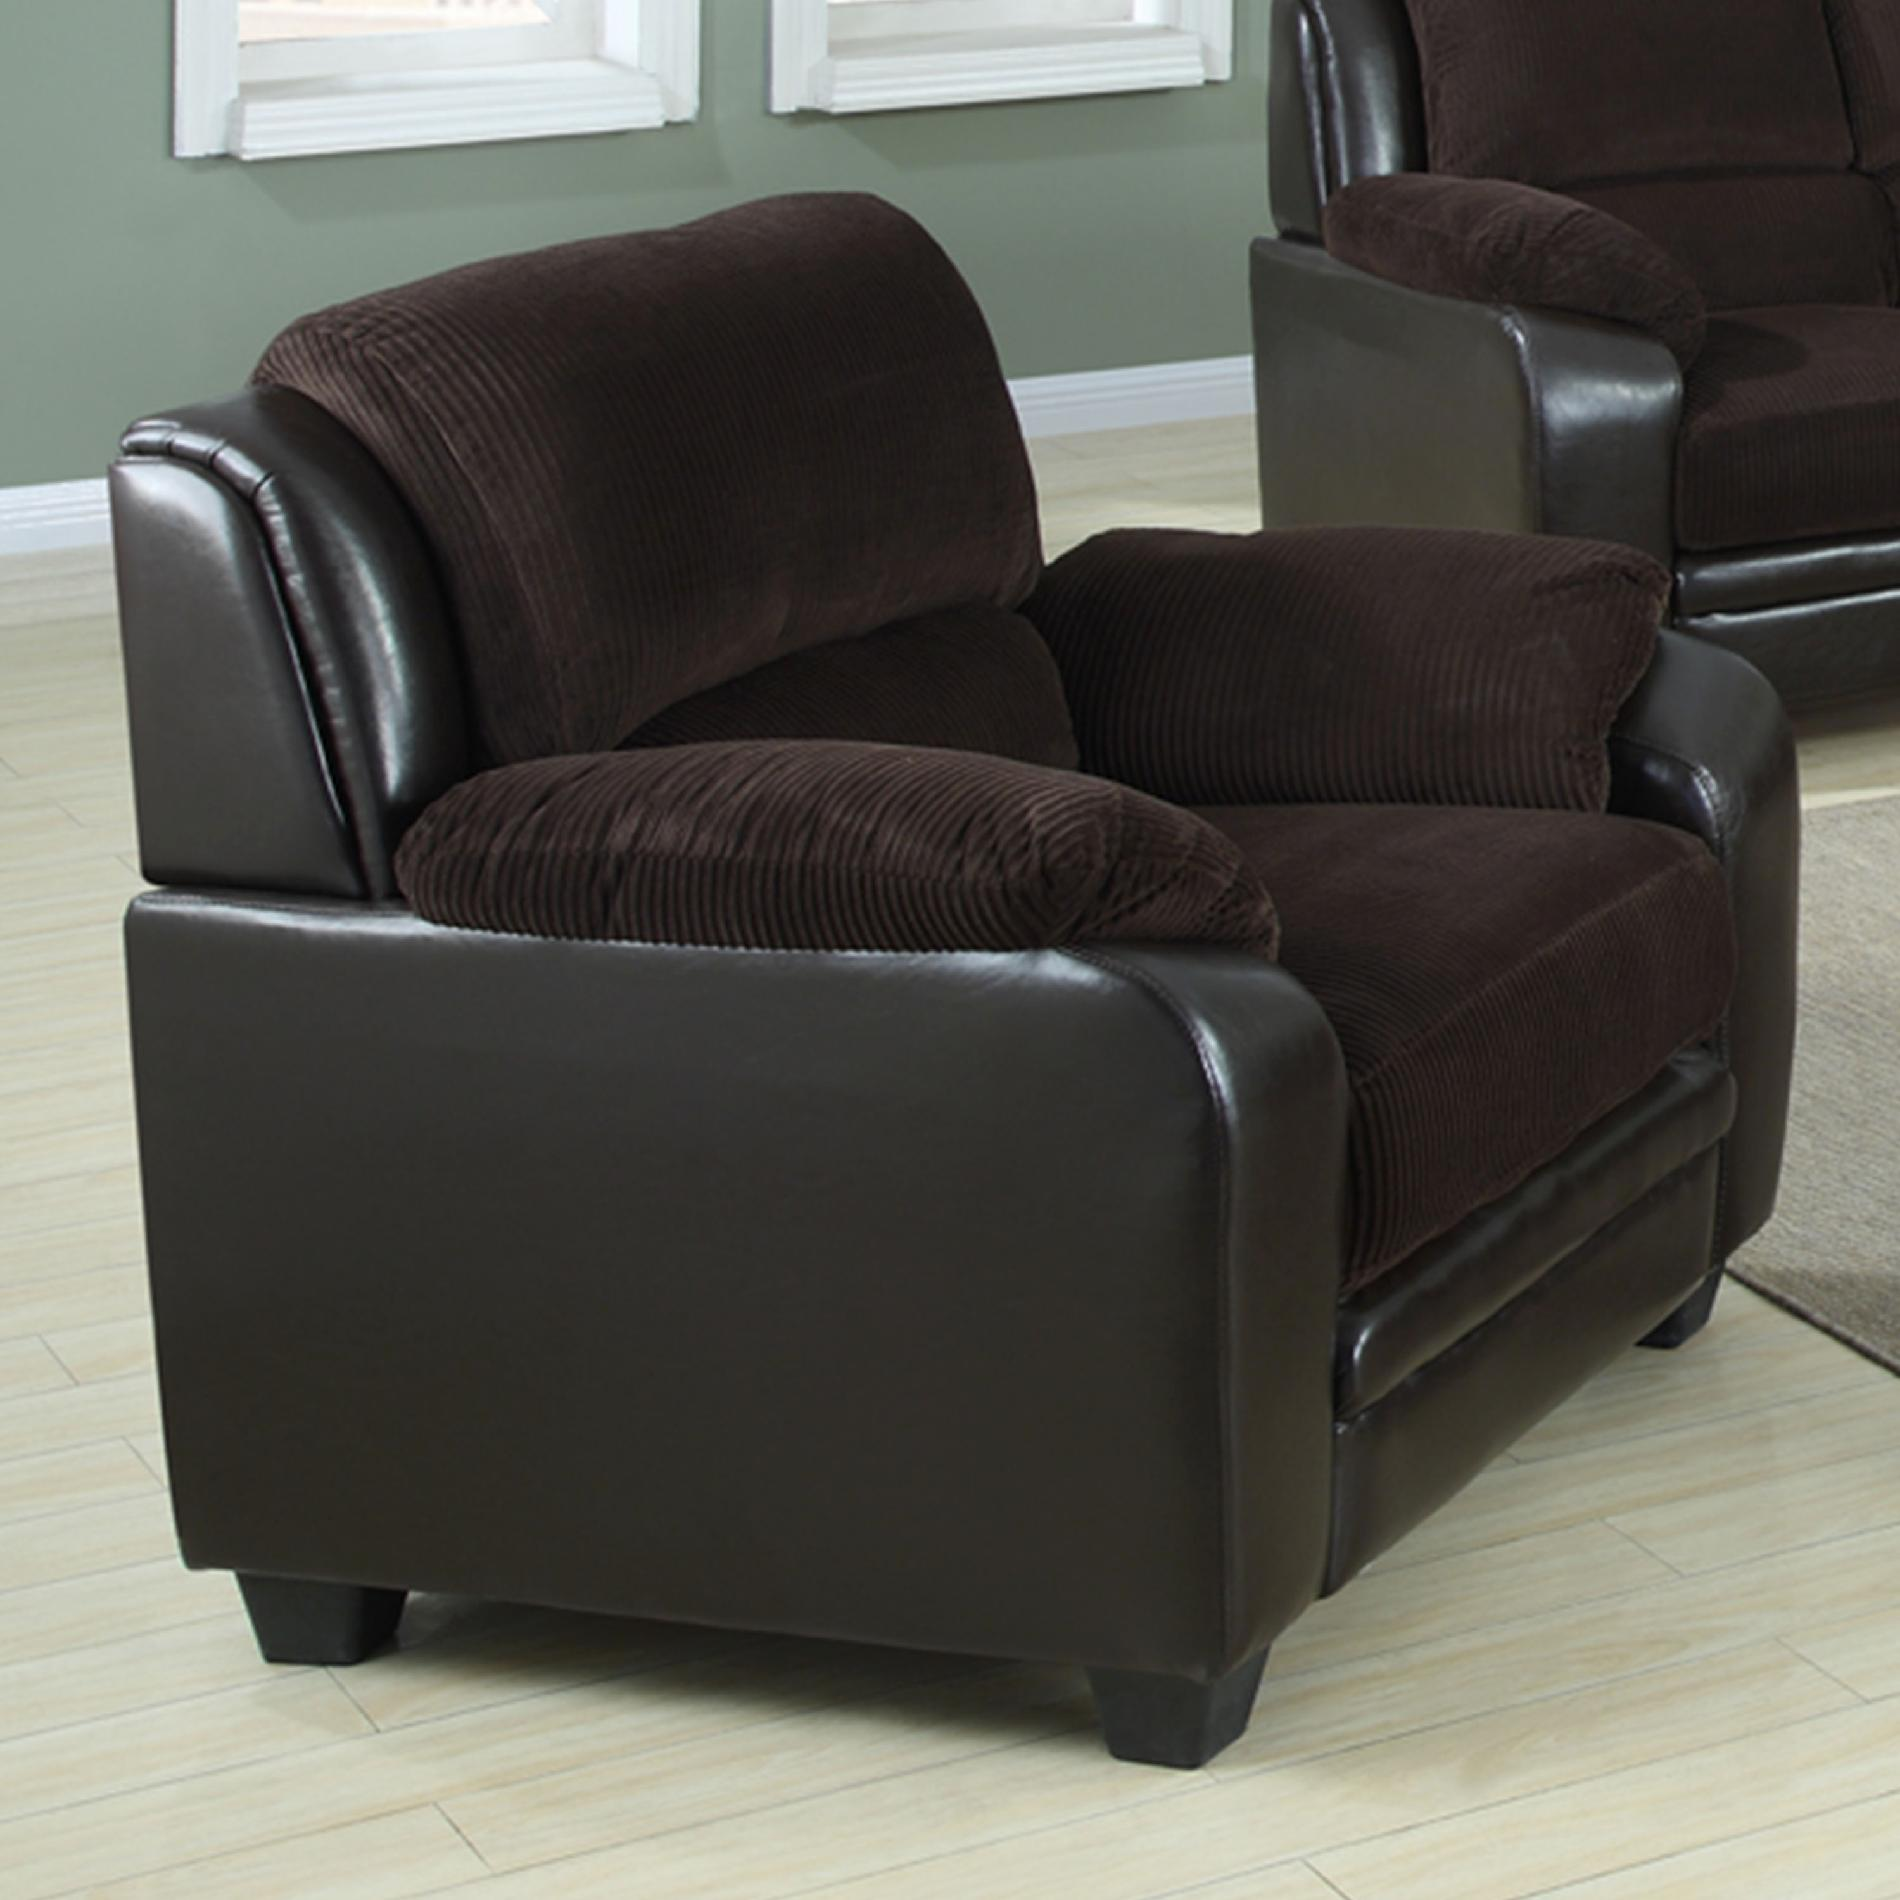 Barton Chair Venetian Worldwide Barton Chocolate Brown Corduroy Chair